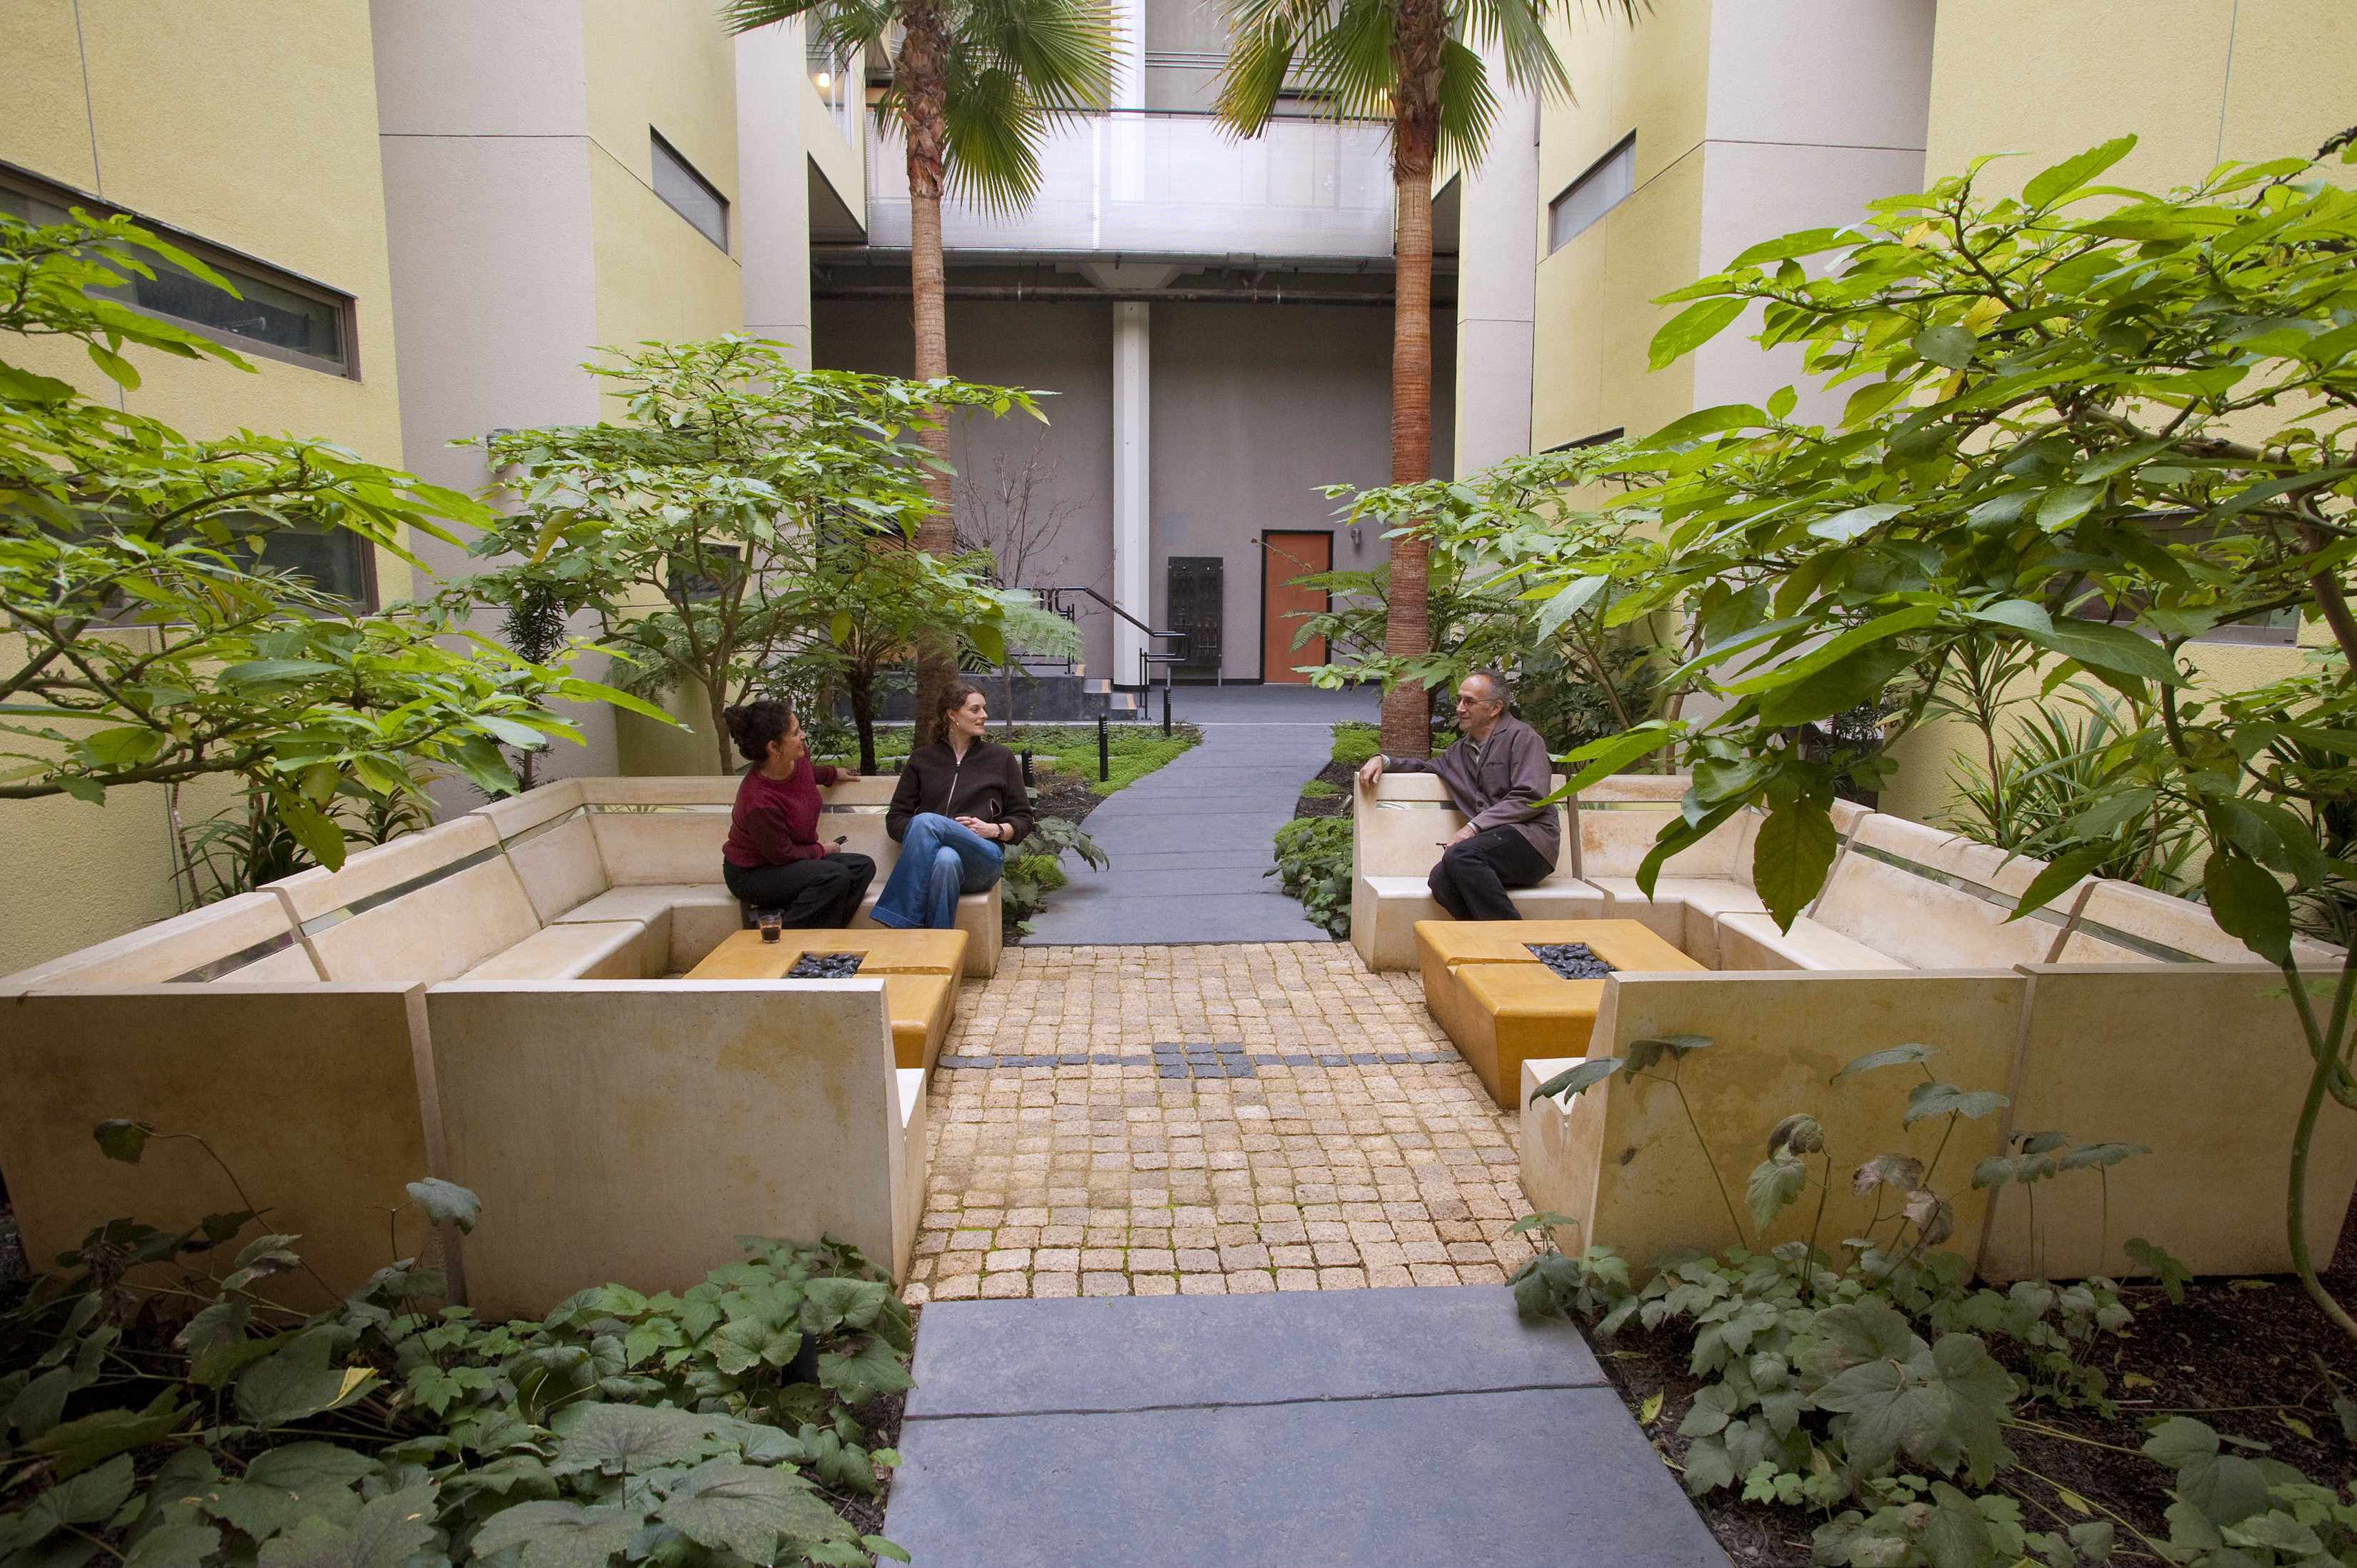 Contemporary Residential Garden Design. ASLA 2010 Professional Awards  Pacific Cannery Lofts